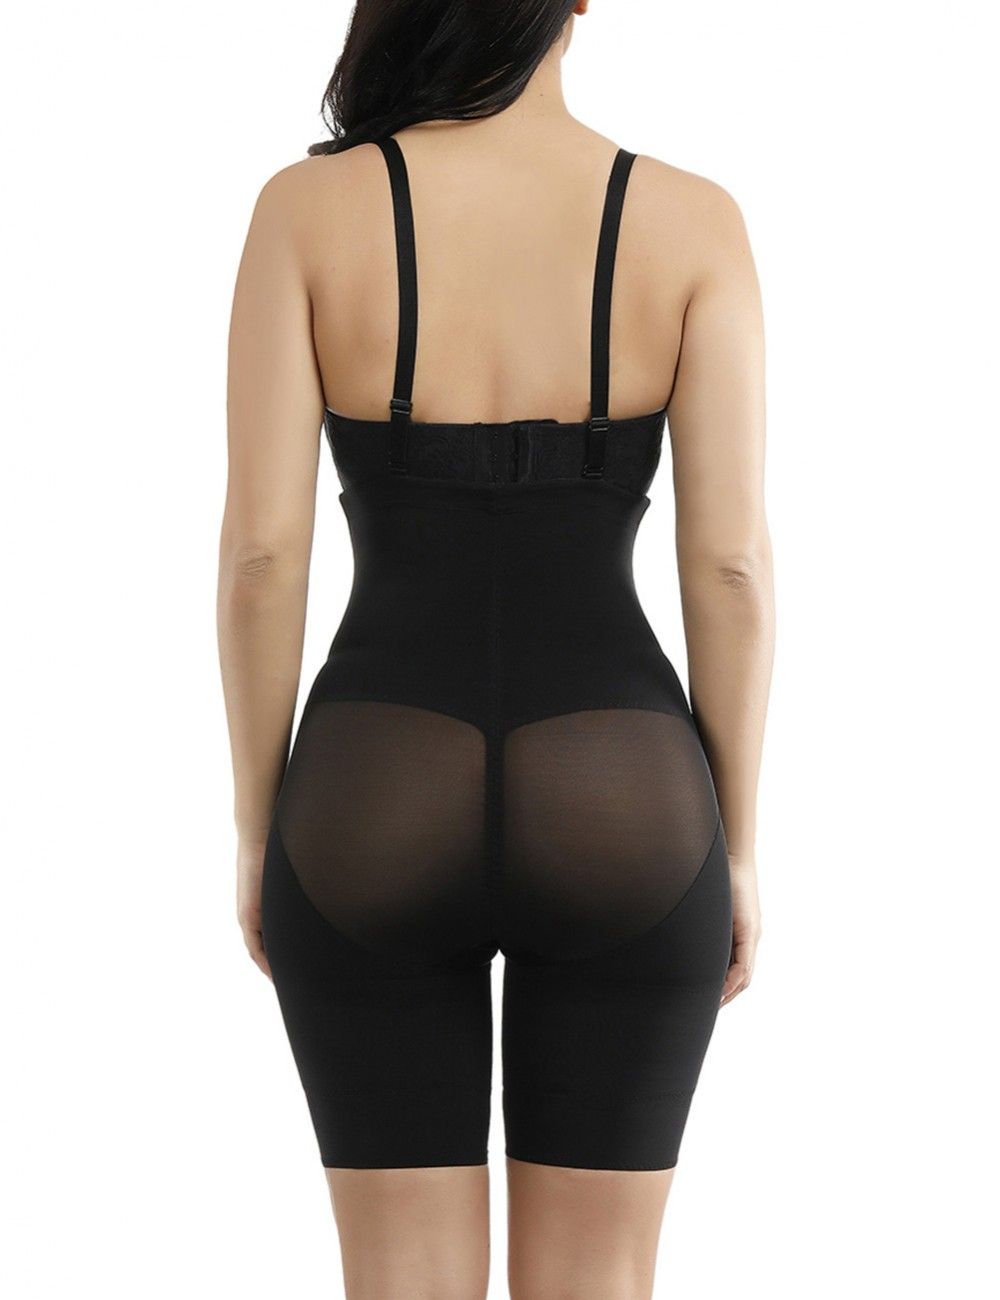 Crotchless Booty Lifting Cross Body Shaper Queen Size High Elastic